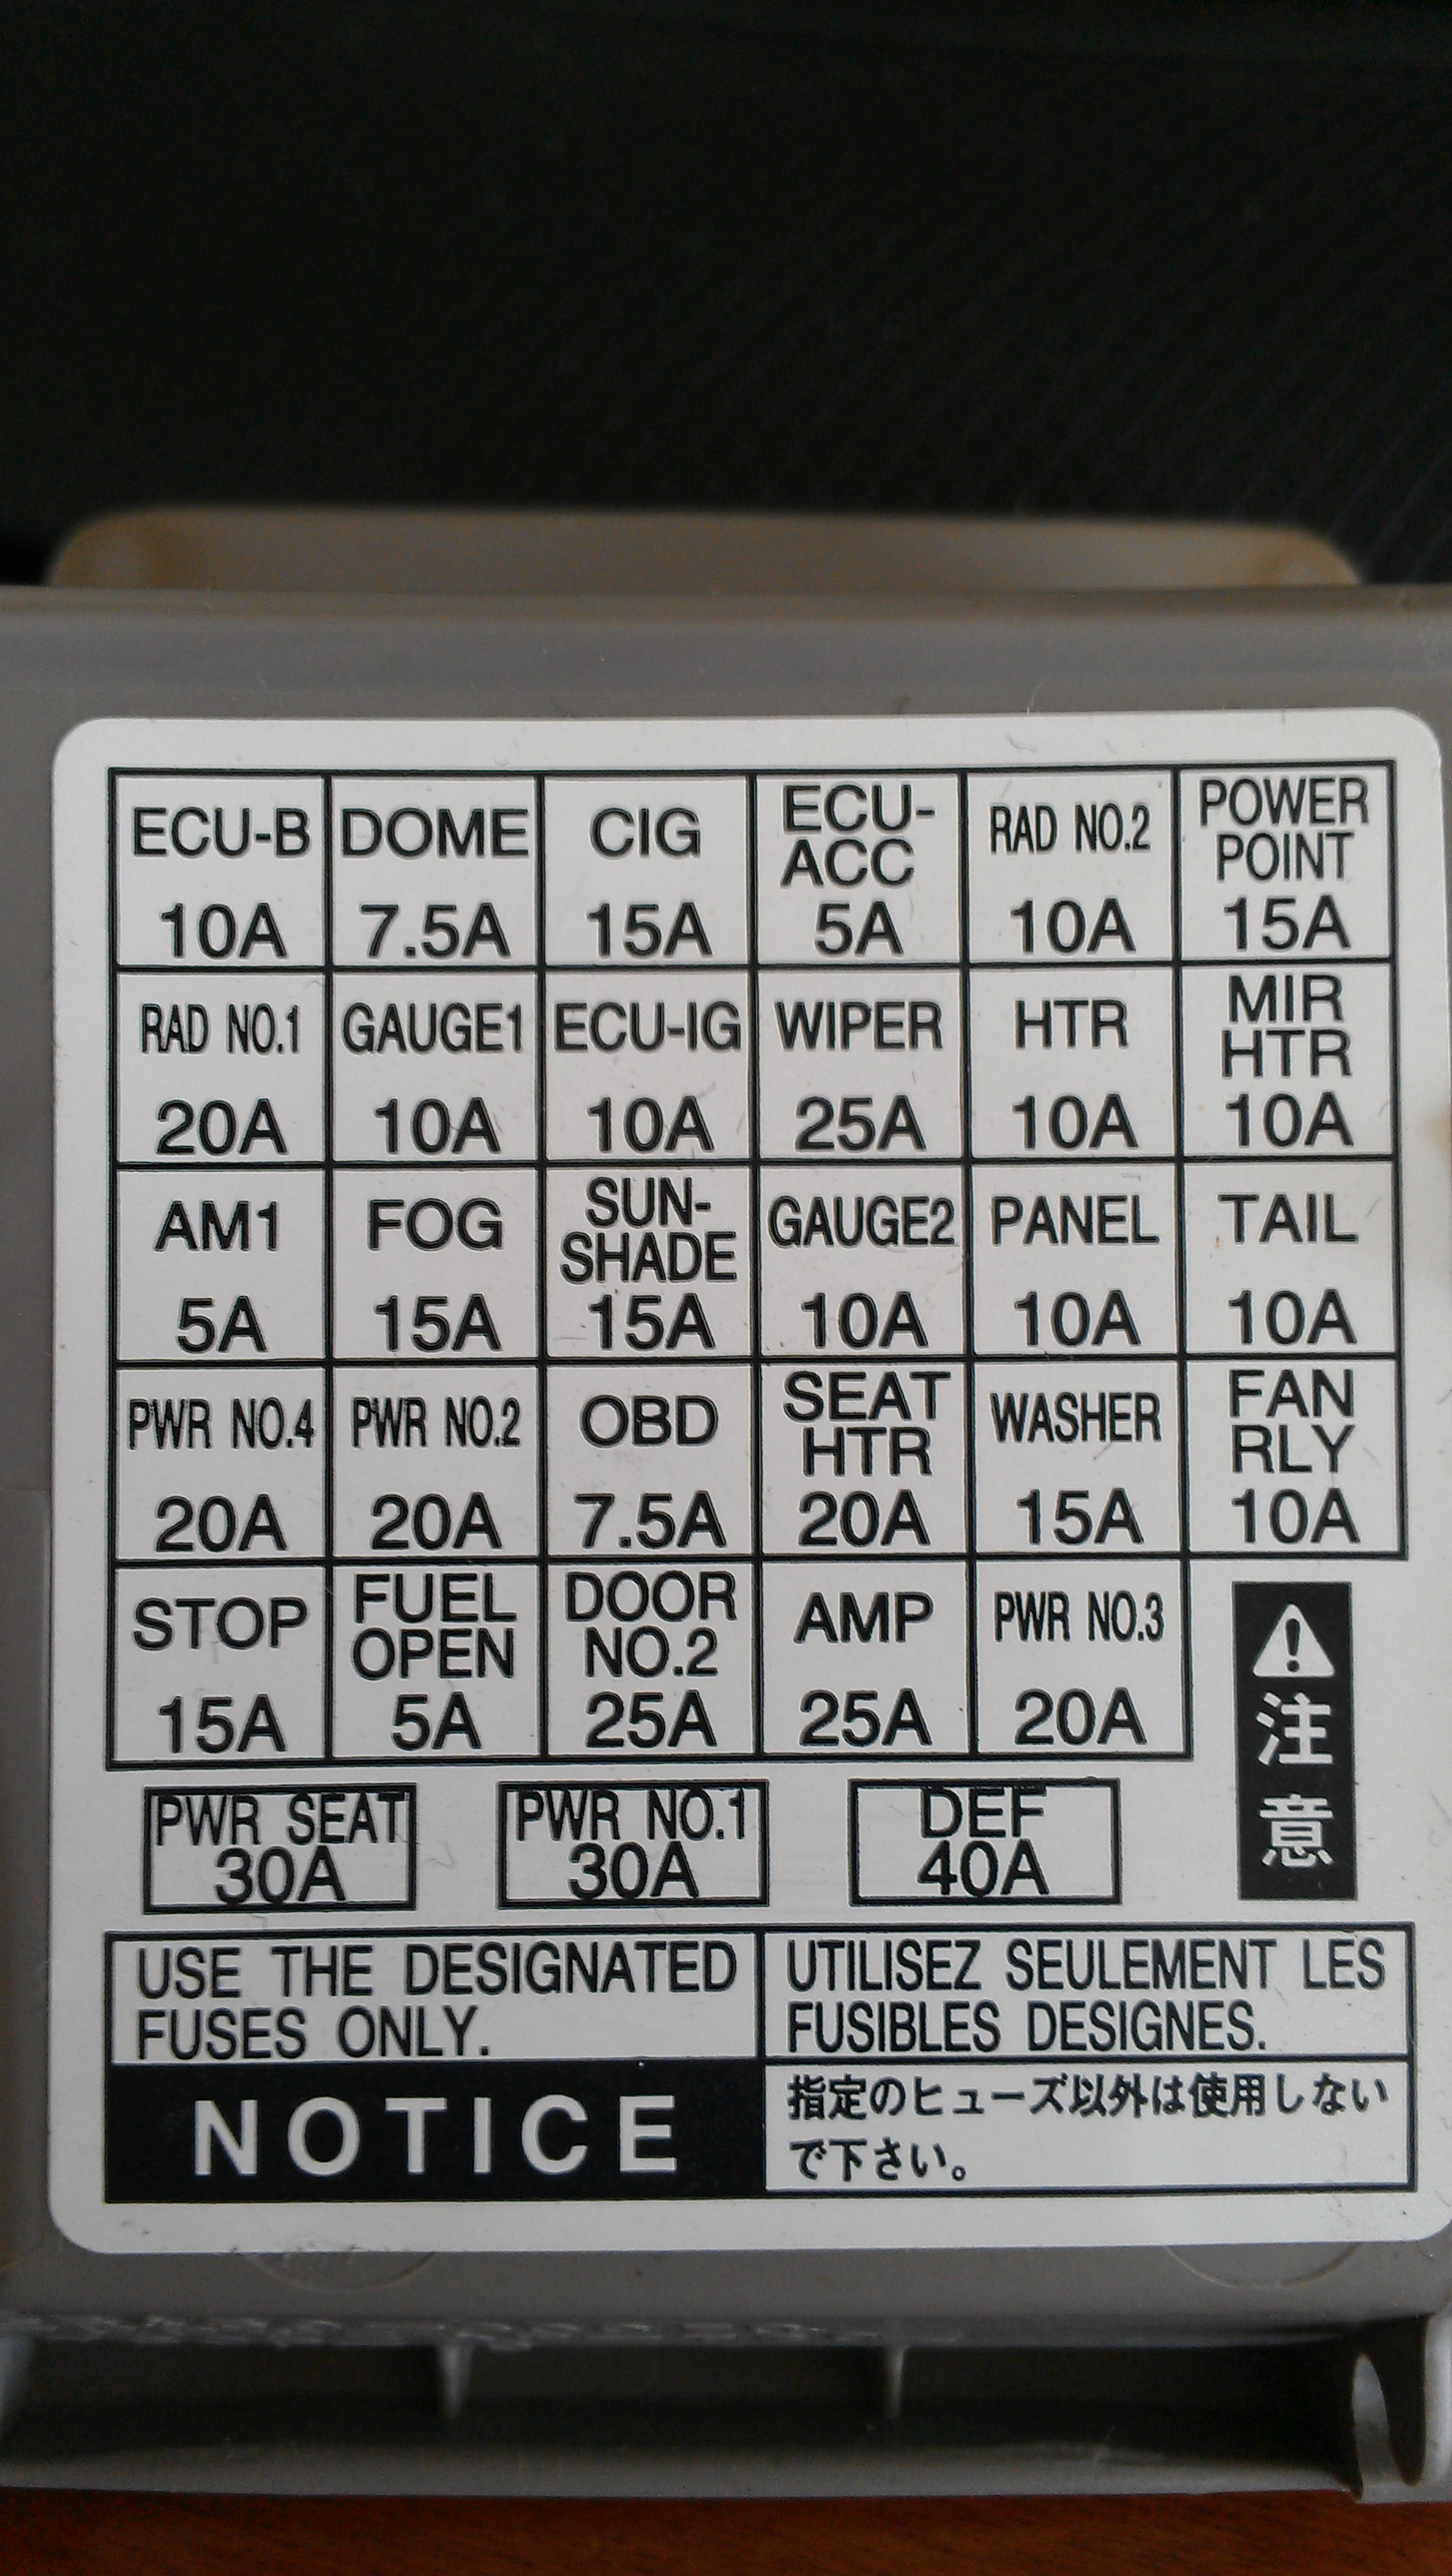 Outback Fuse Box Diagram On 1998 Subaru Outback Fuel Pump Relay